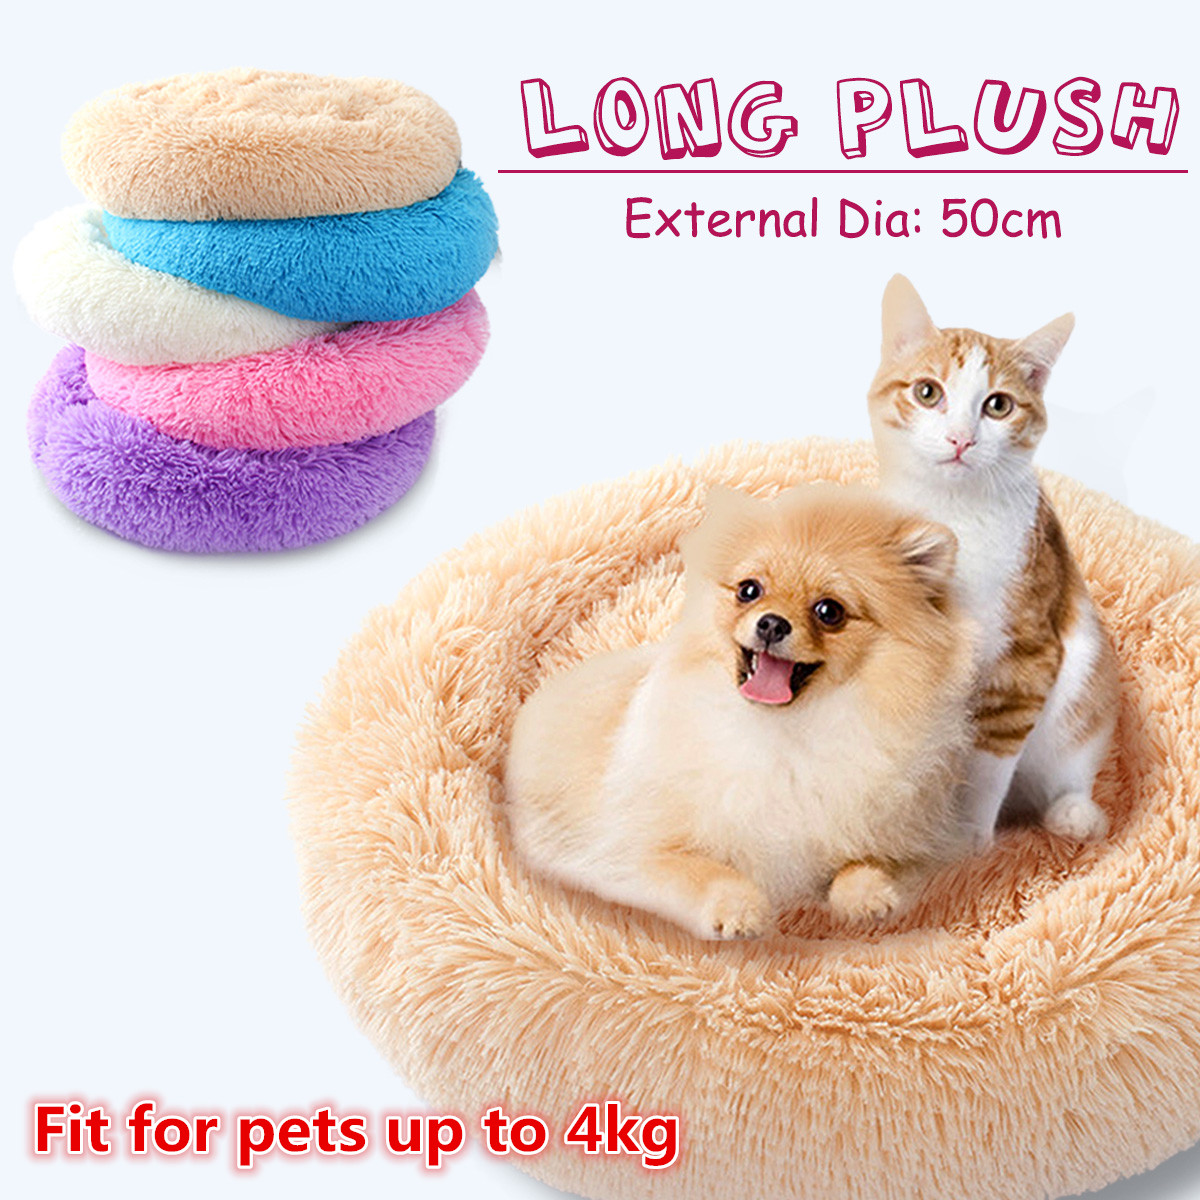 Cuddle Round Pet Bed Long Plush Soft Mattress Sleeping Nest Warming House Pet Cushion for Dog Puppy Cat - Small